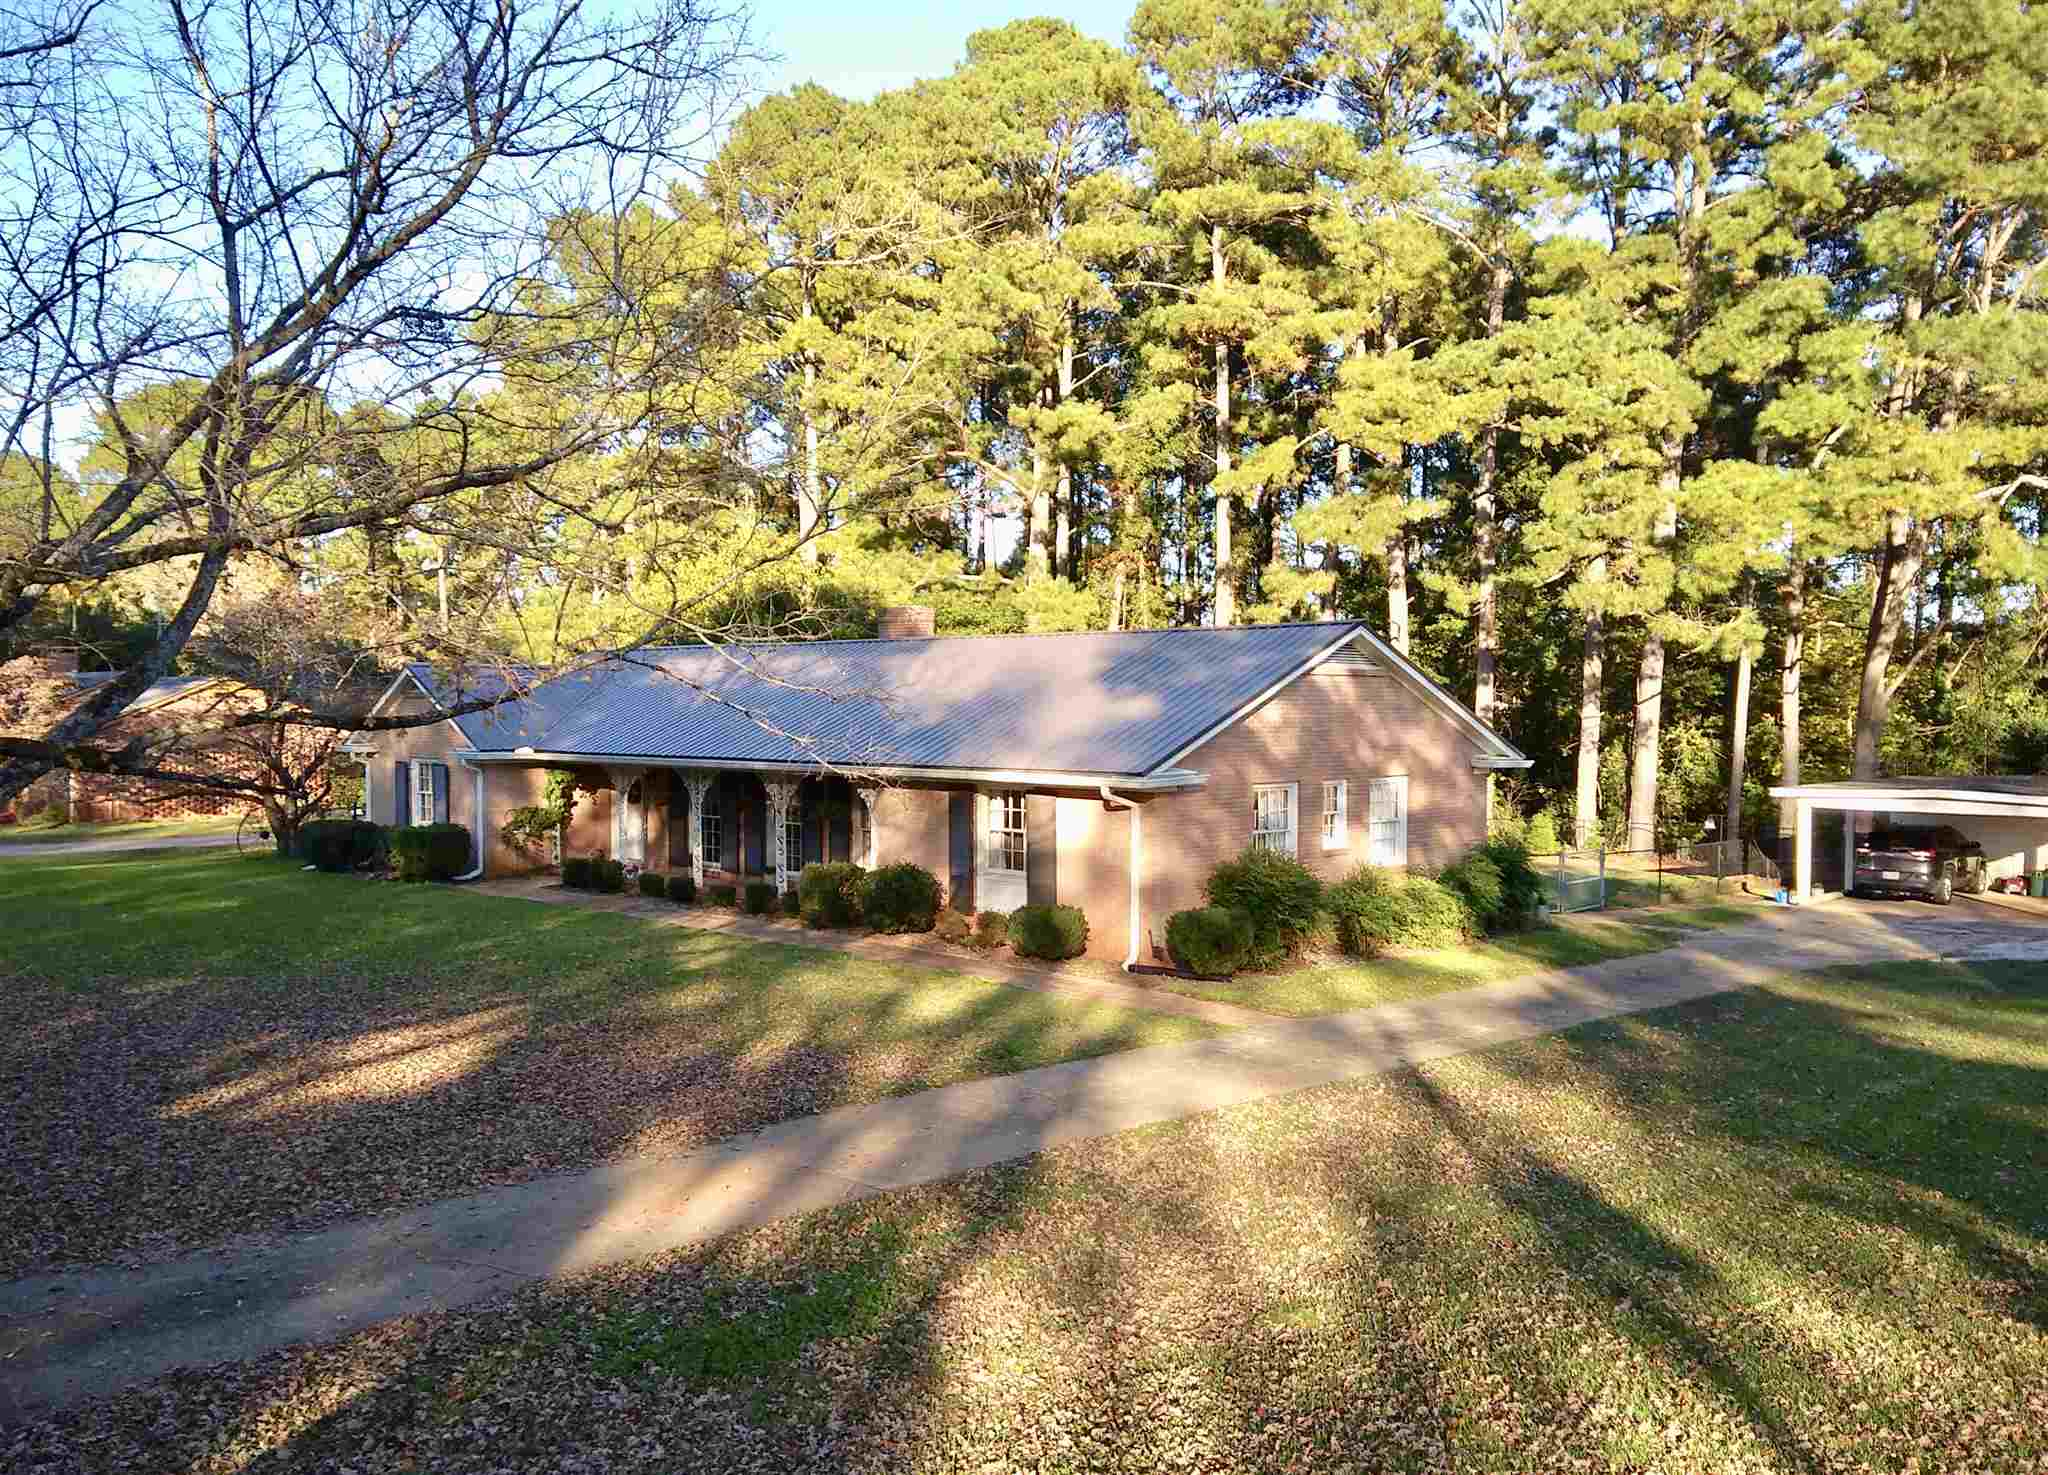 512 S. EAST STREET, Lake Oconee in Greene County, GA 30642 Home for Sale